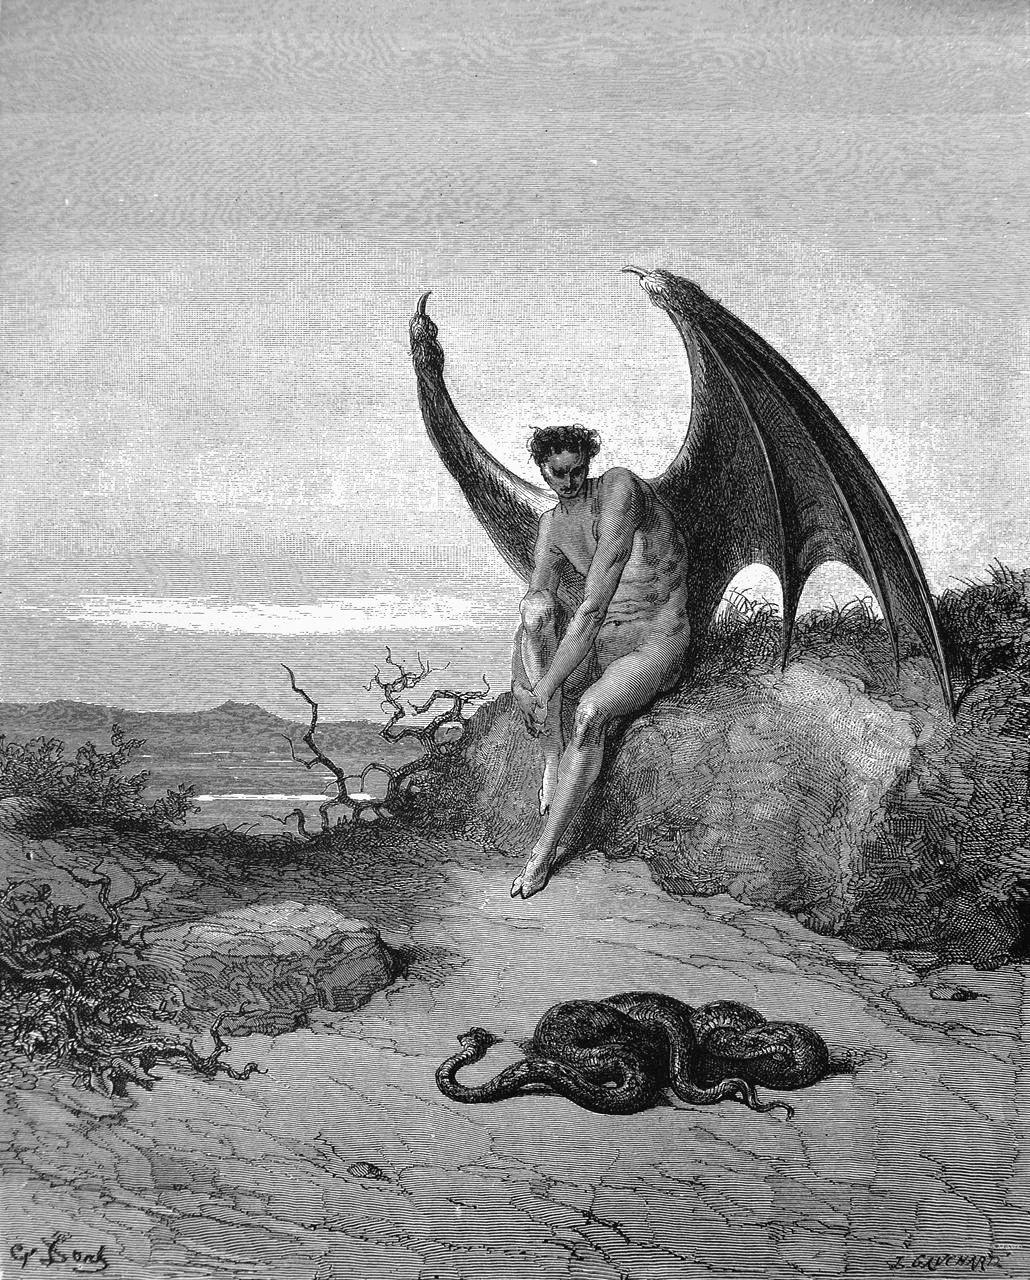 File:Lucifer3.jpg - Wikimedia Commons